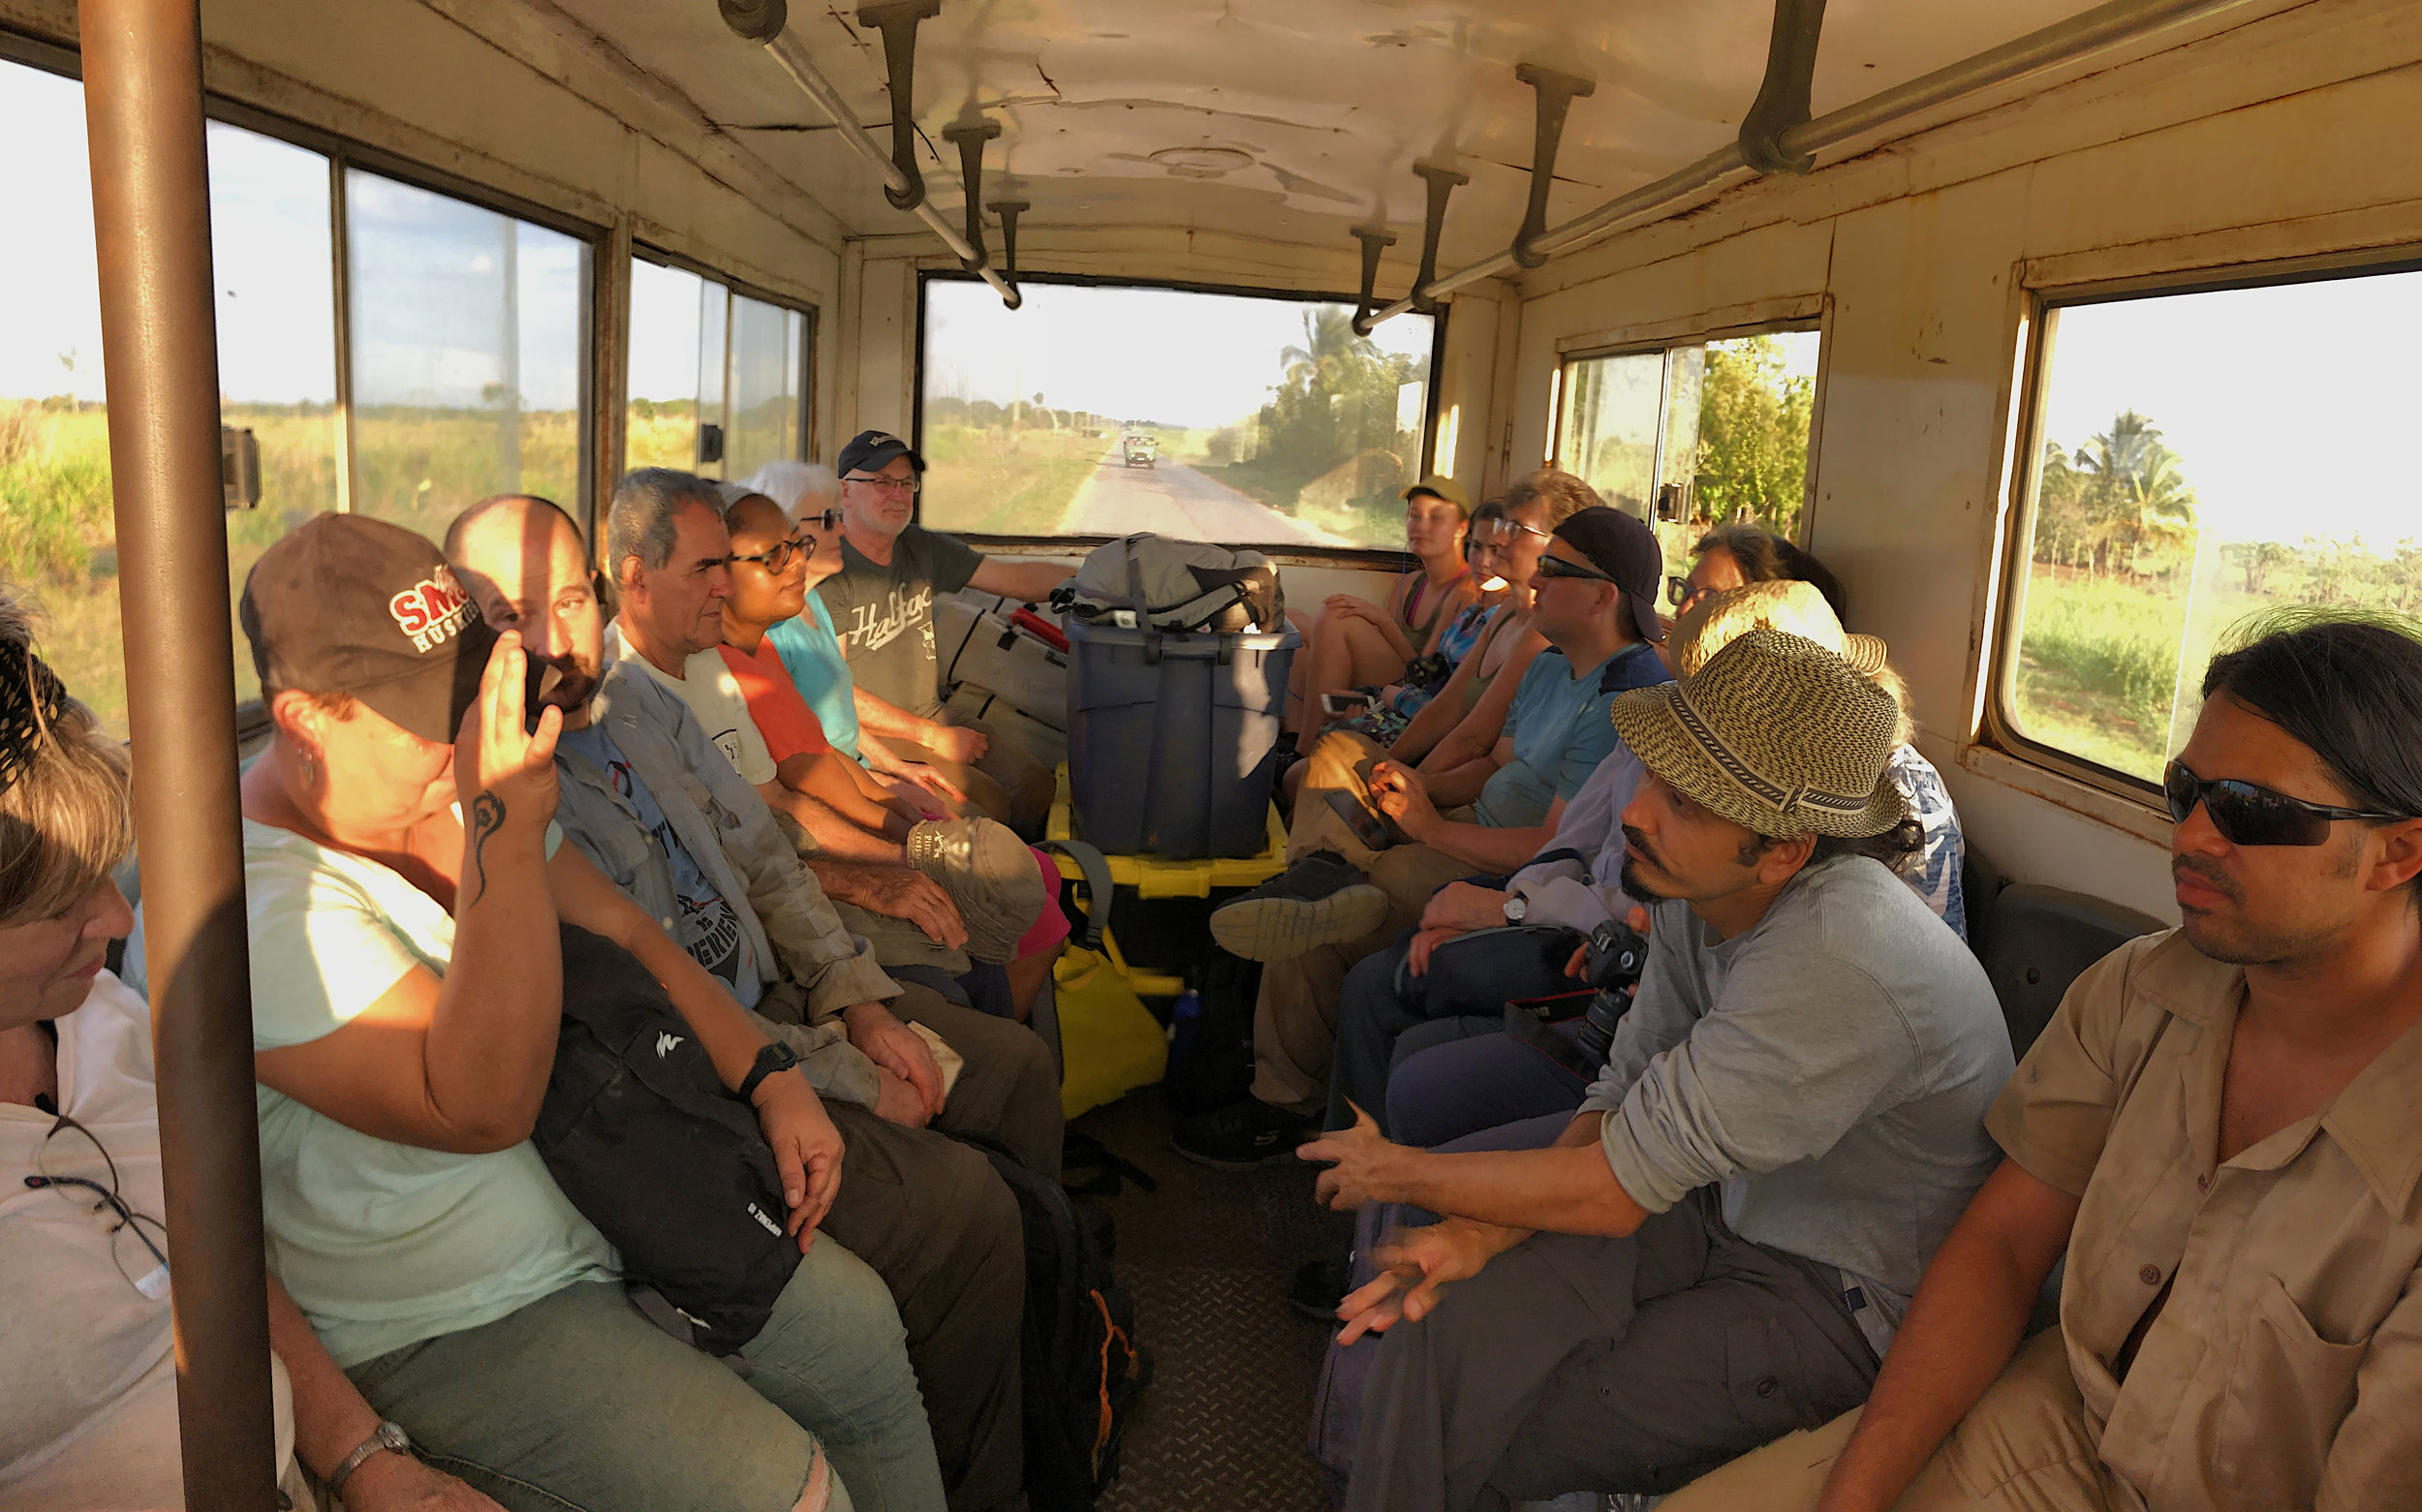 Commuting to the site by bus.